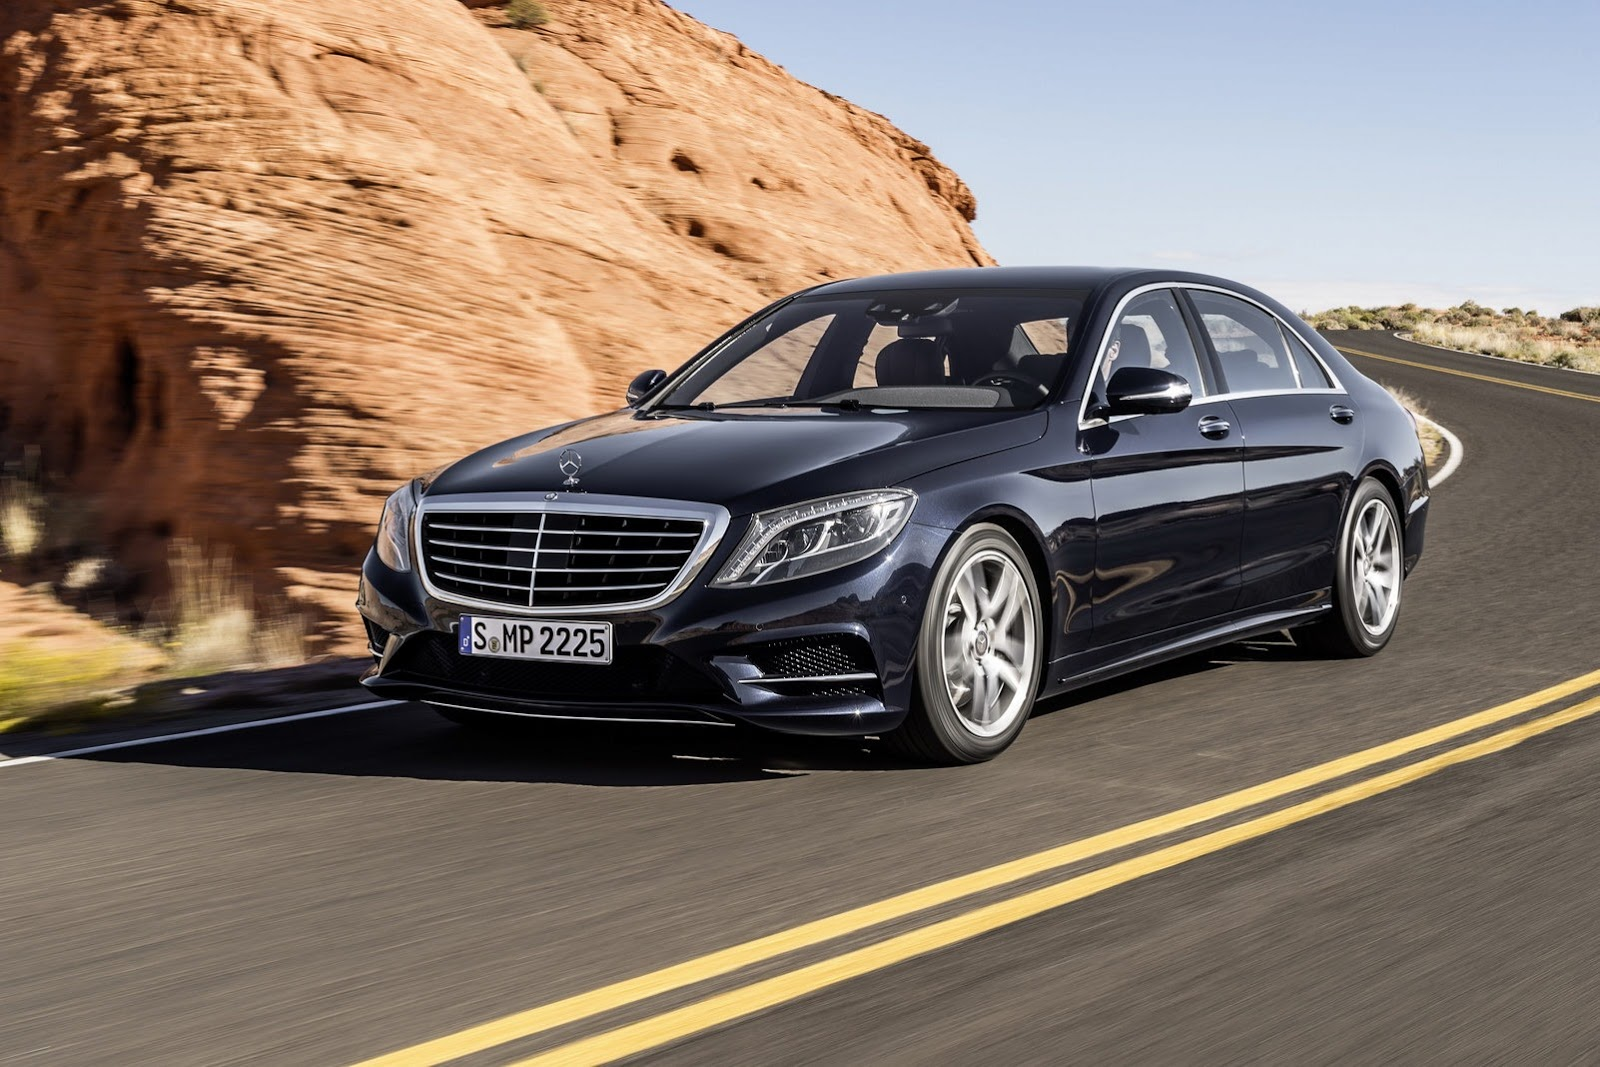 2014 Mercedes Benz S-Class - SMADE MEDIA (28)